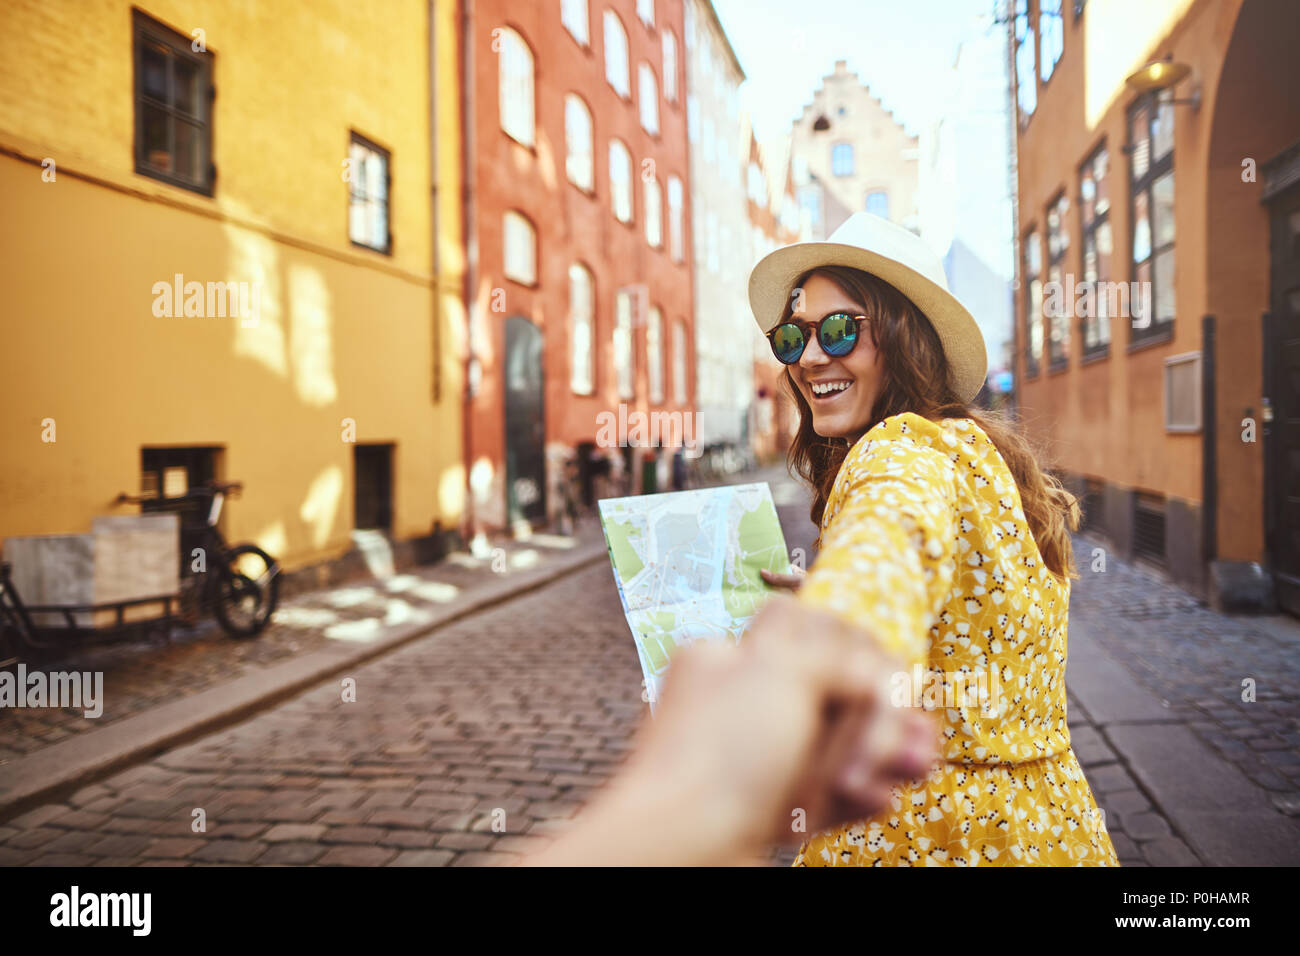 POV of a laughing young woman wearing sunglasses and reading a map while leading another person by the hand through cobblestone city streets - Stock Image